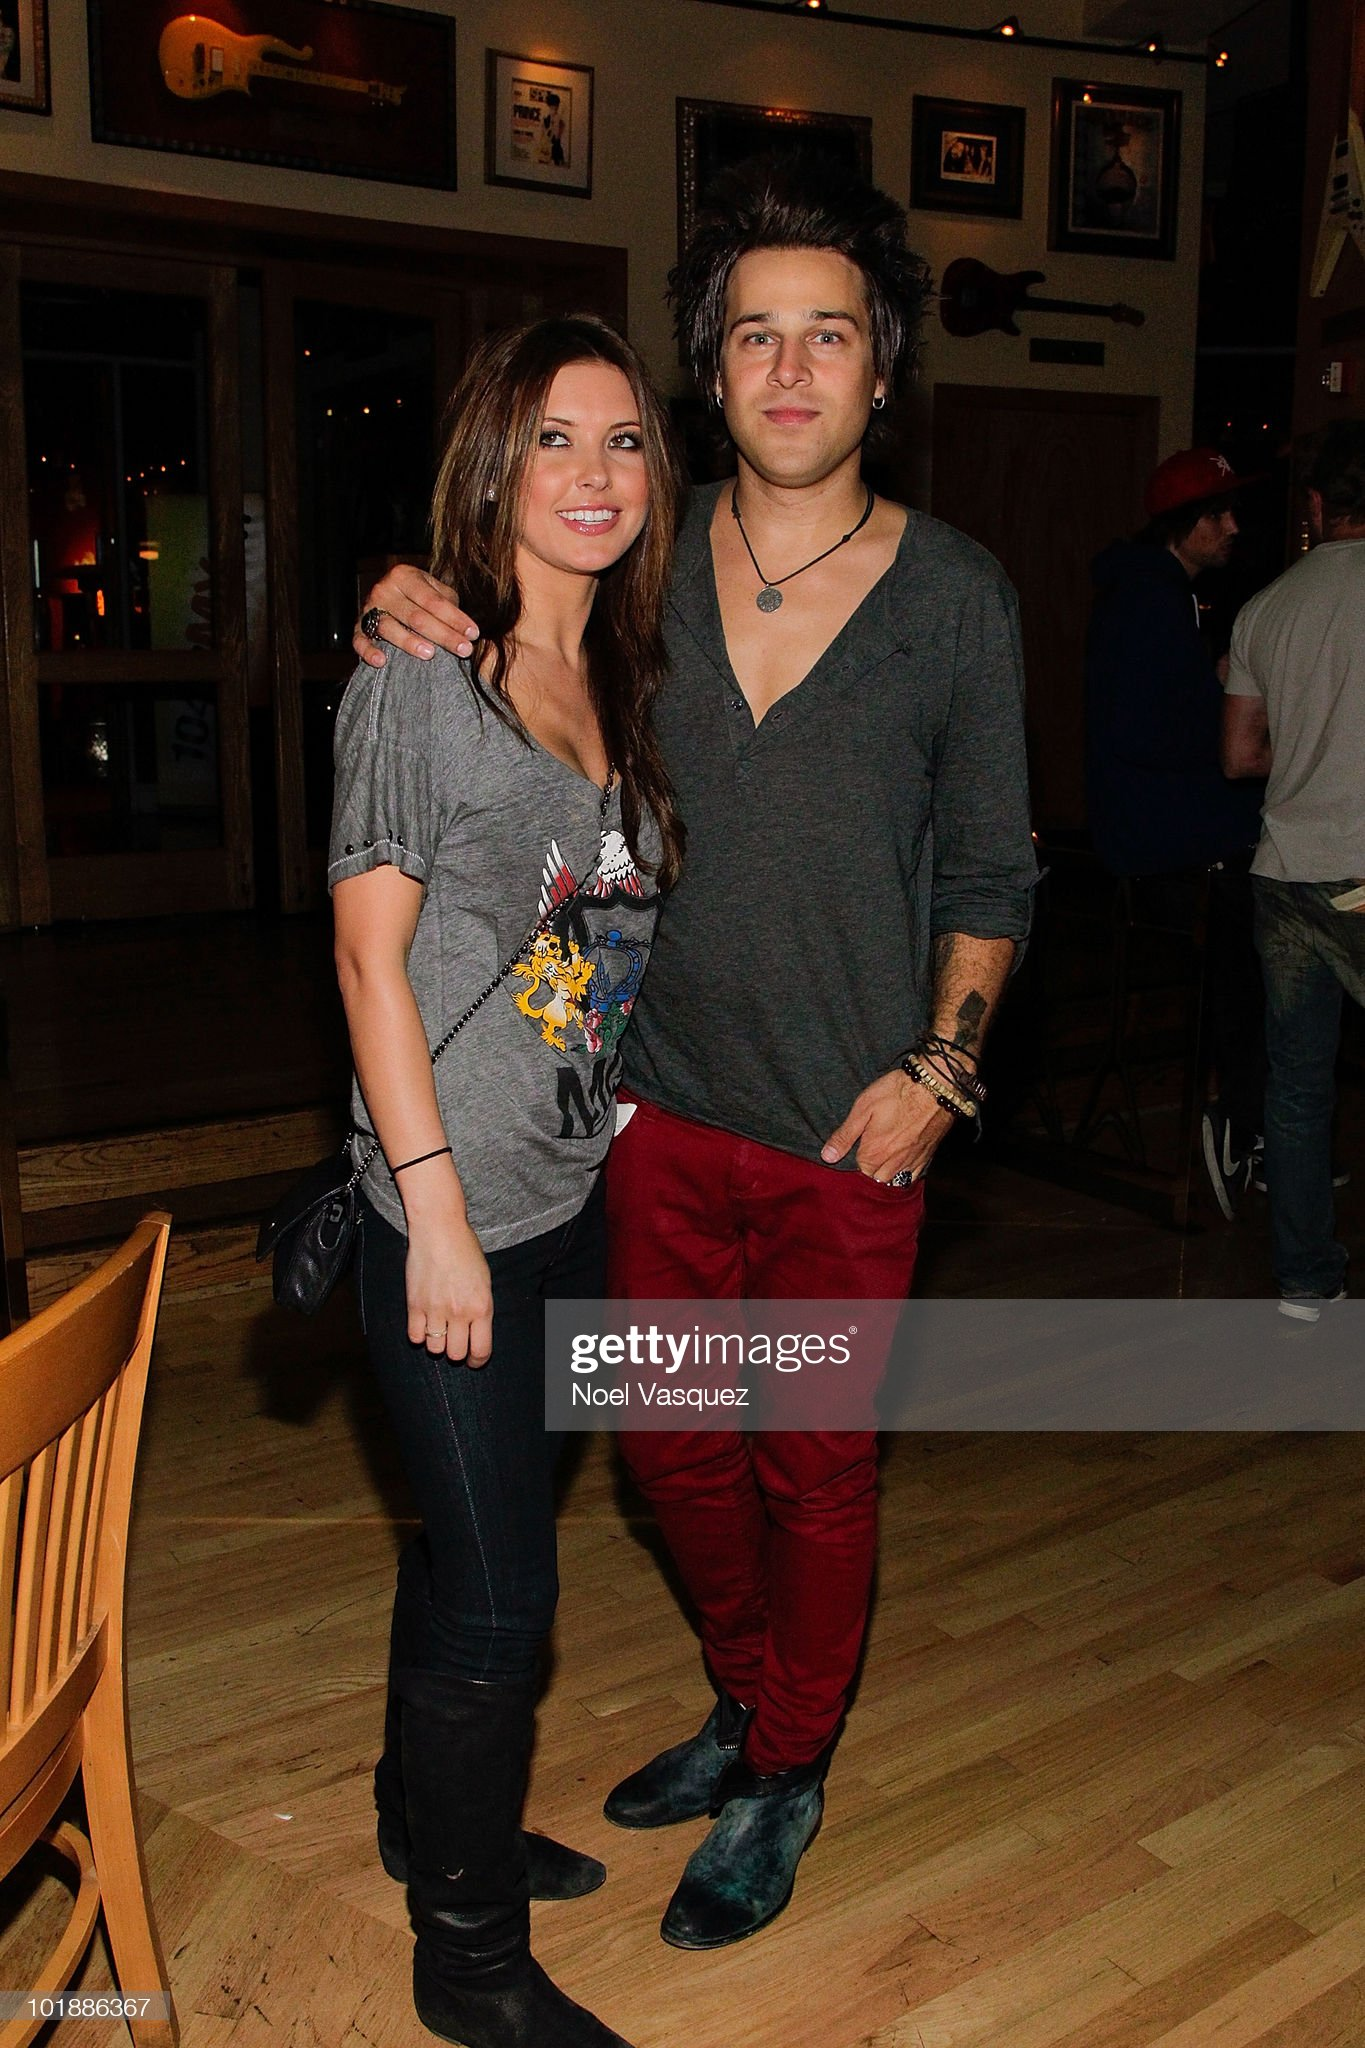 ¿Cuánto mide Ryan Cabrera? - Real height Audrina-patridge-and-ryan-cabrera-attend-the-hard-rock-cafe-and-on-picture-id101886367?s=2048x2048